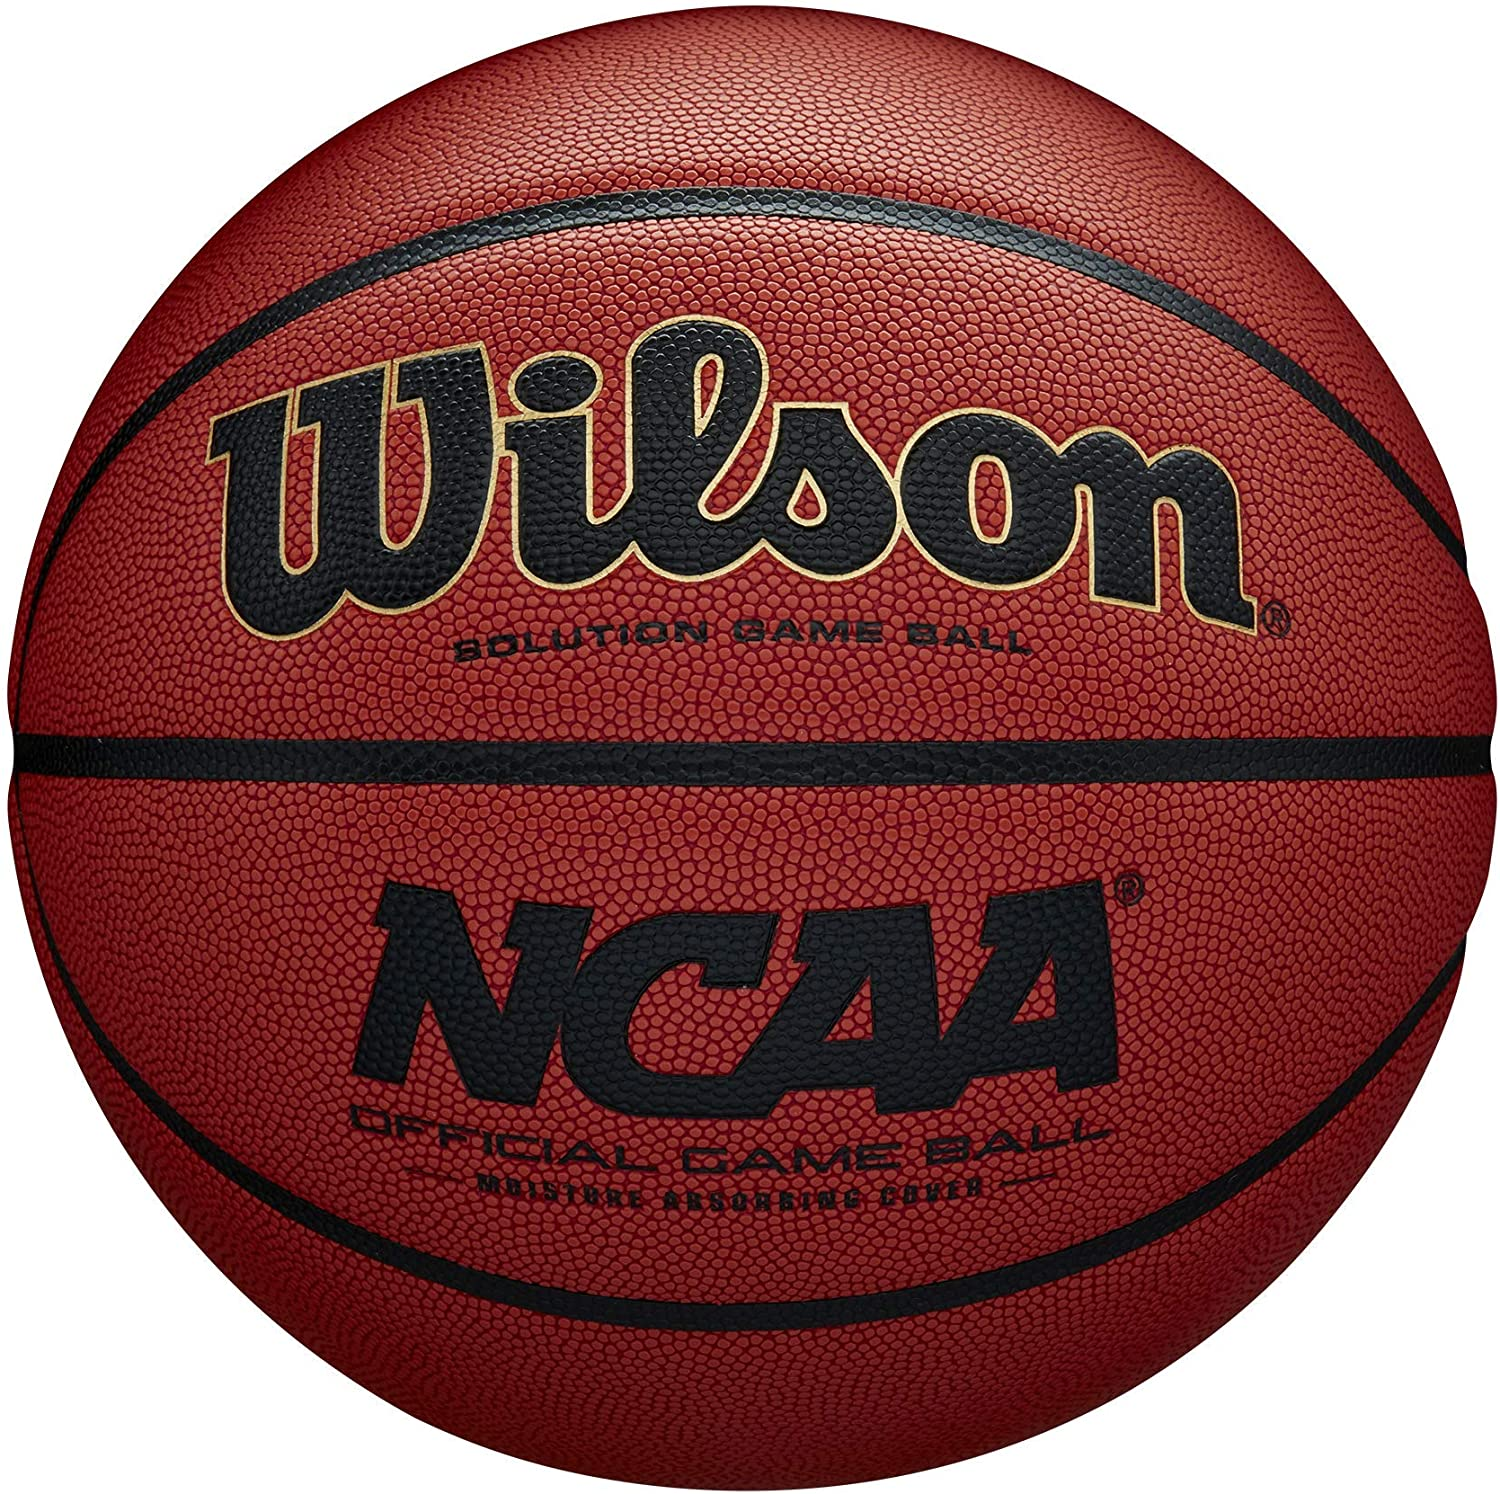 Cheap Wilson Sporting Goods NCAA Official Fees free Game - Basketball